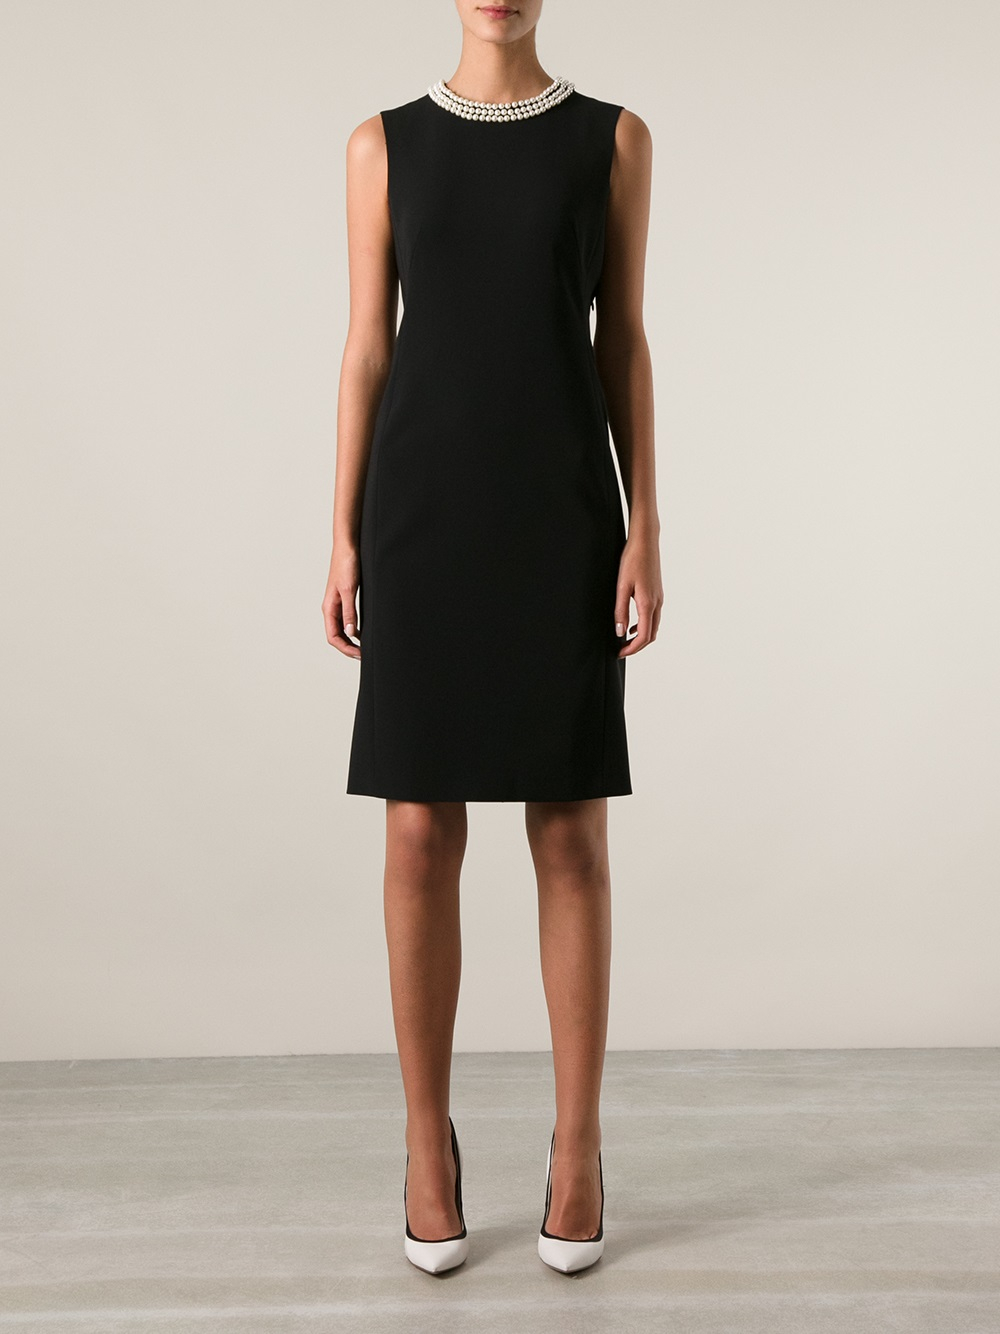 Lyst Moschino Faux Pearl Detail Dress In Black